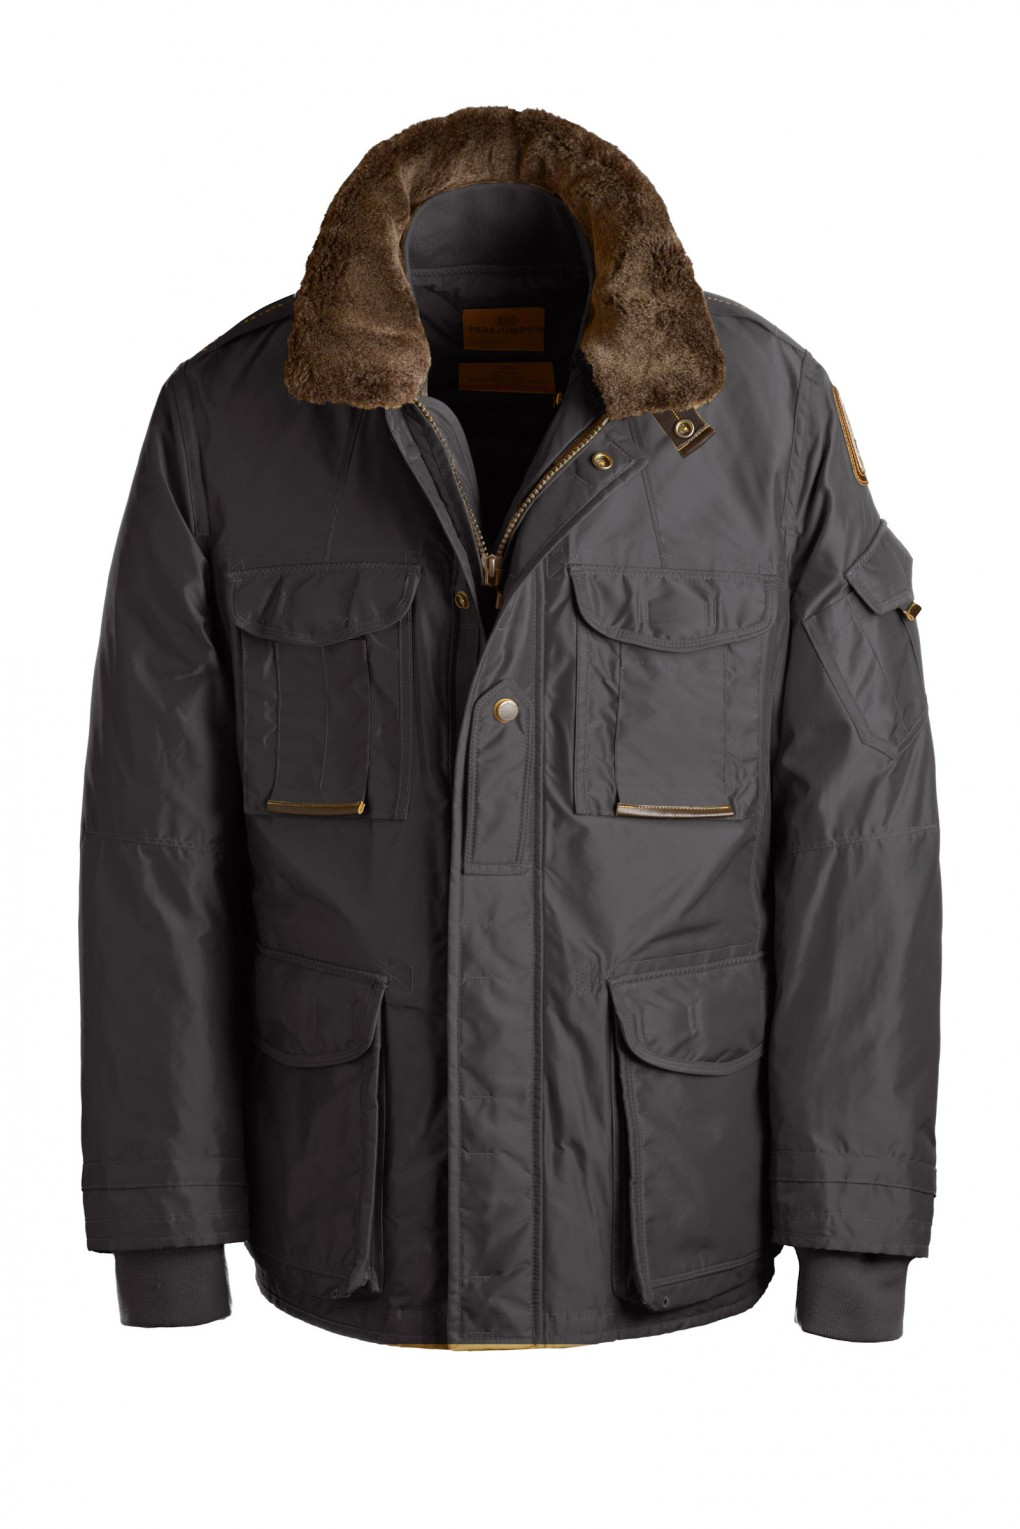 parajumpers PORTLAND man outerwear Brown